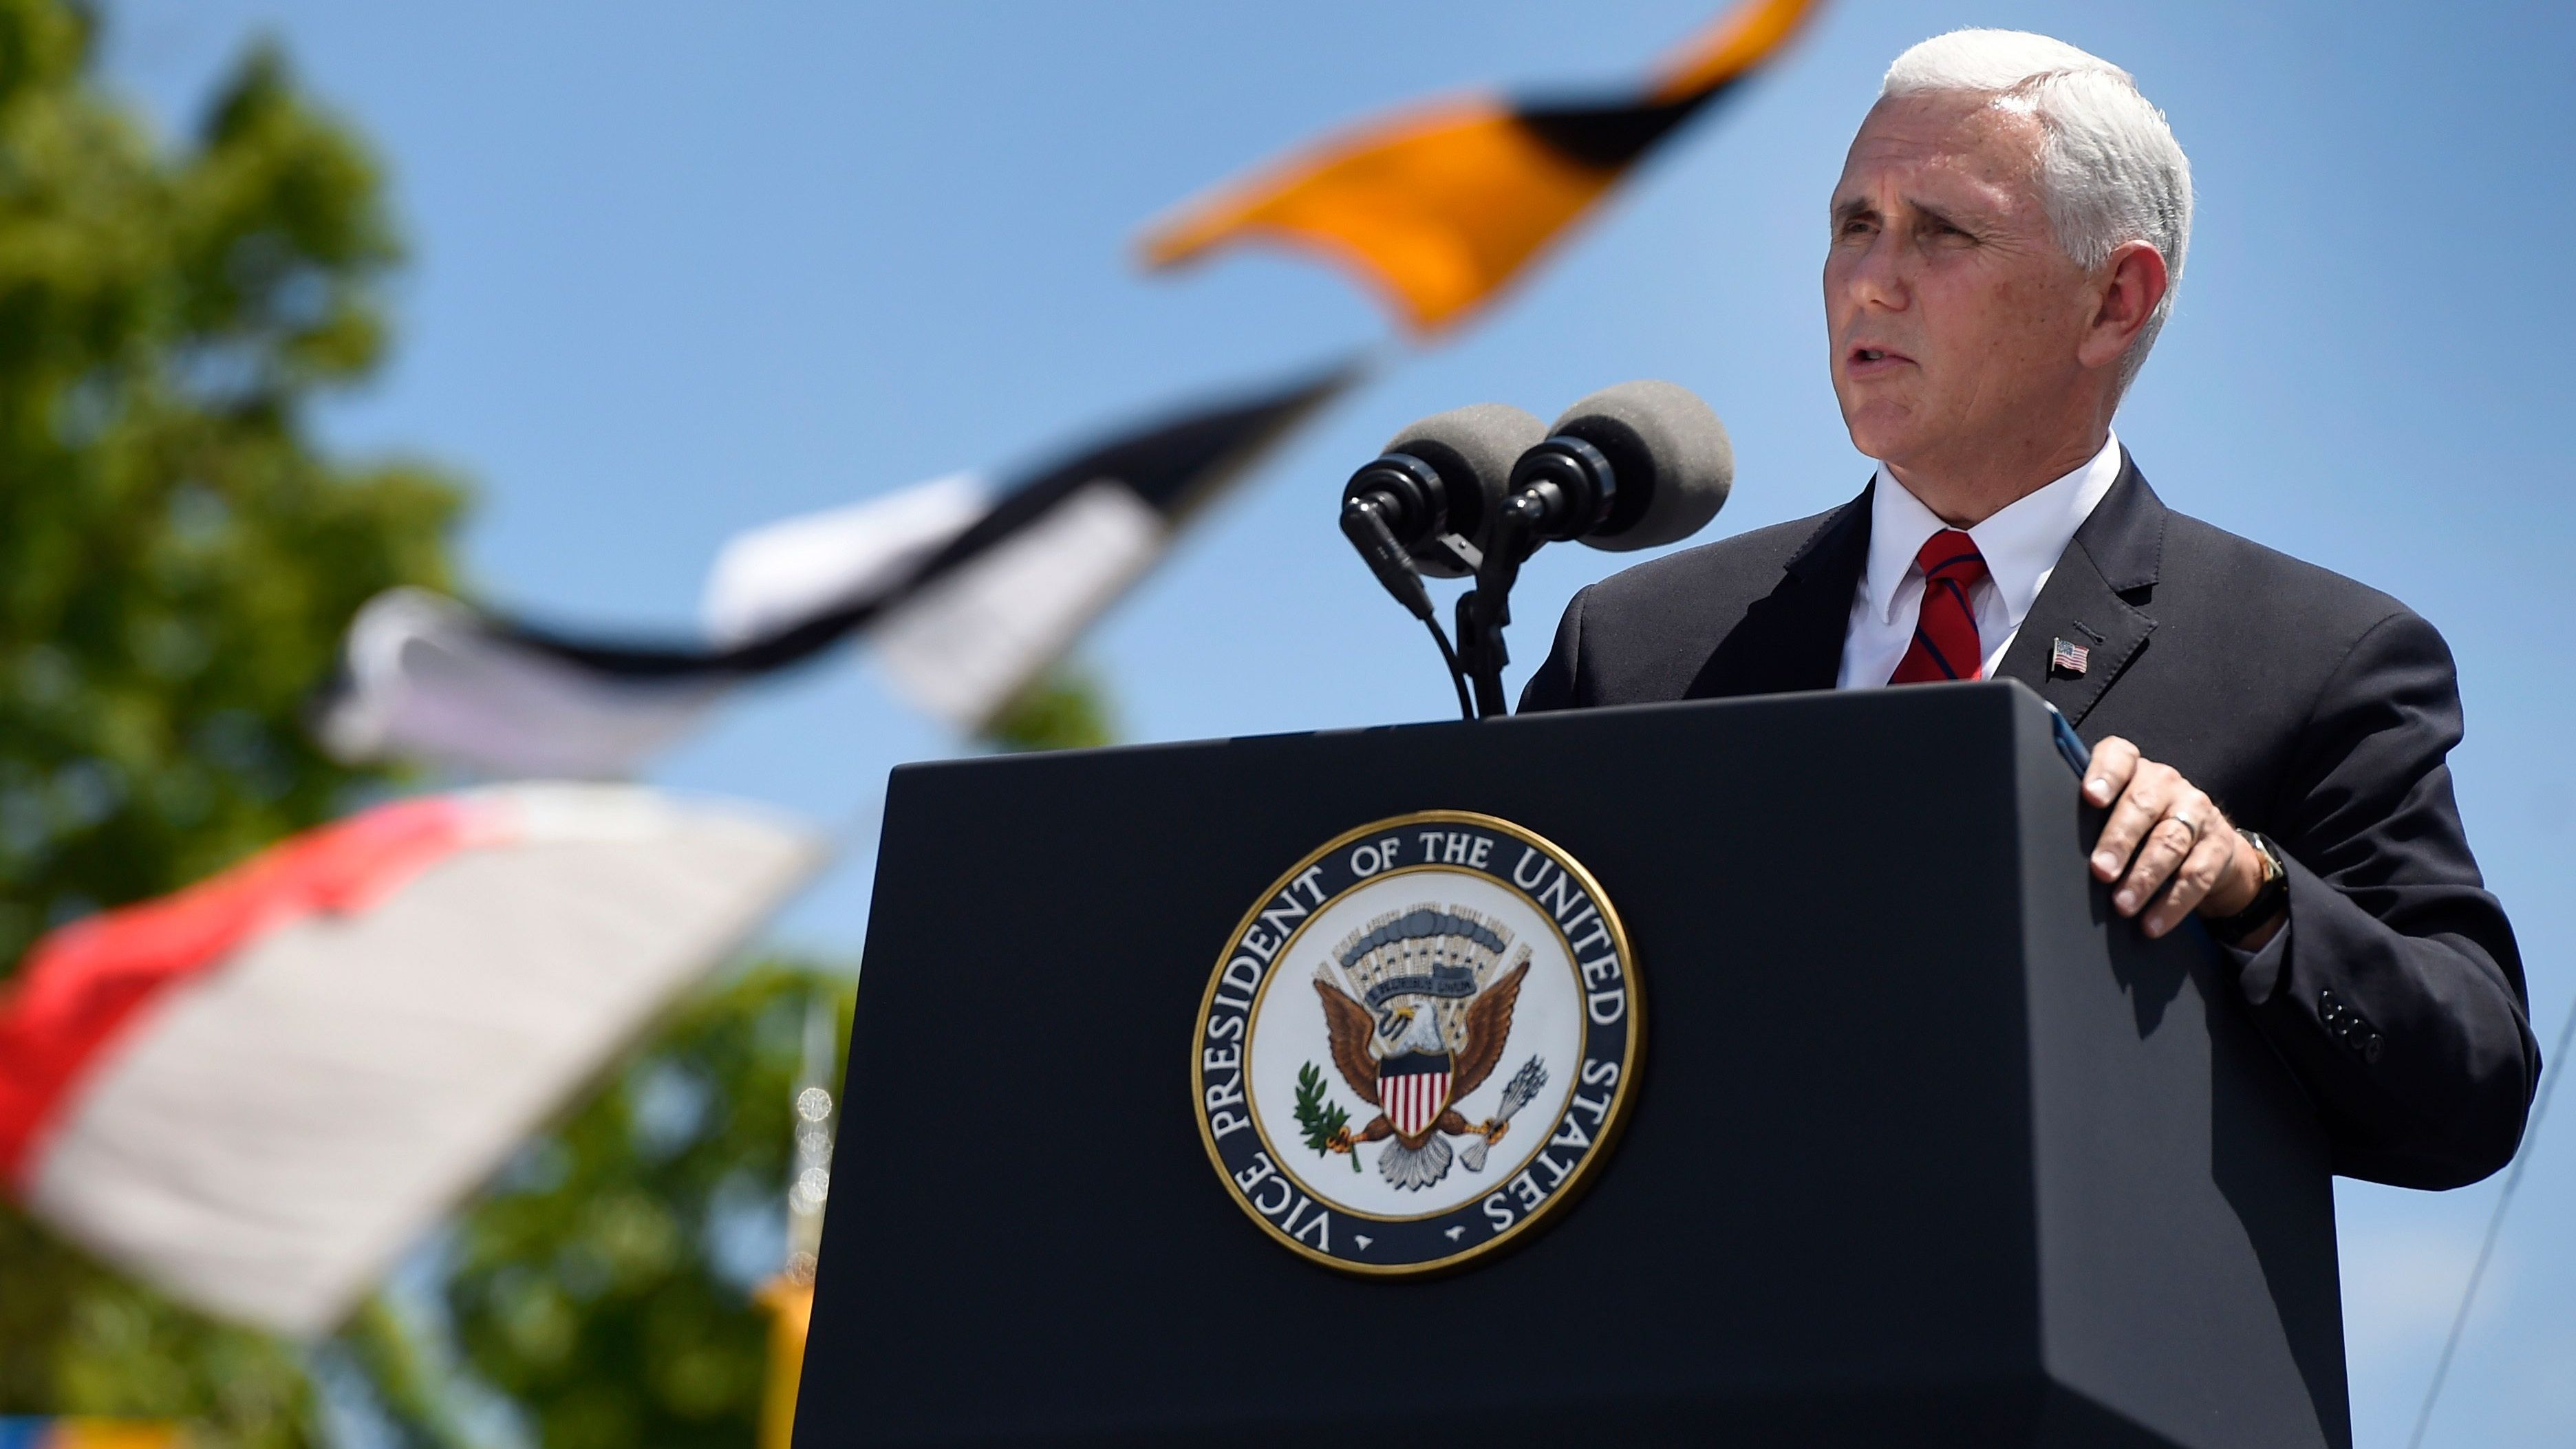 Vice President Mike Pence speaks at the commencement for the United States Coast Guard Academy in New London, Conn., Wednesday, May 23, 2018. (AP Photo/Jessica Hill)